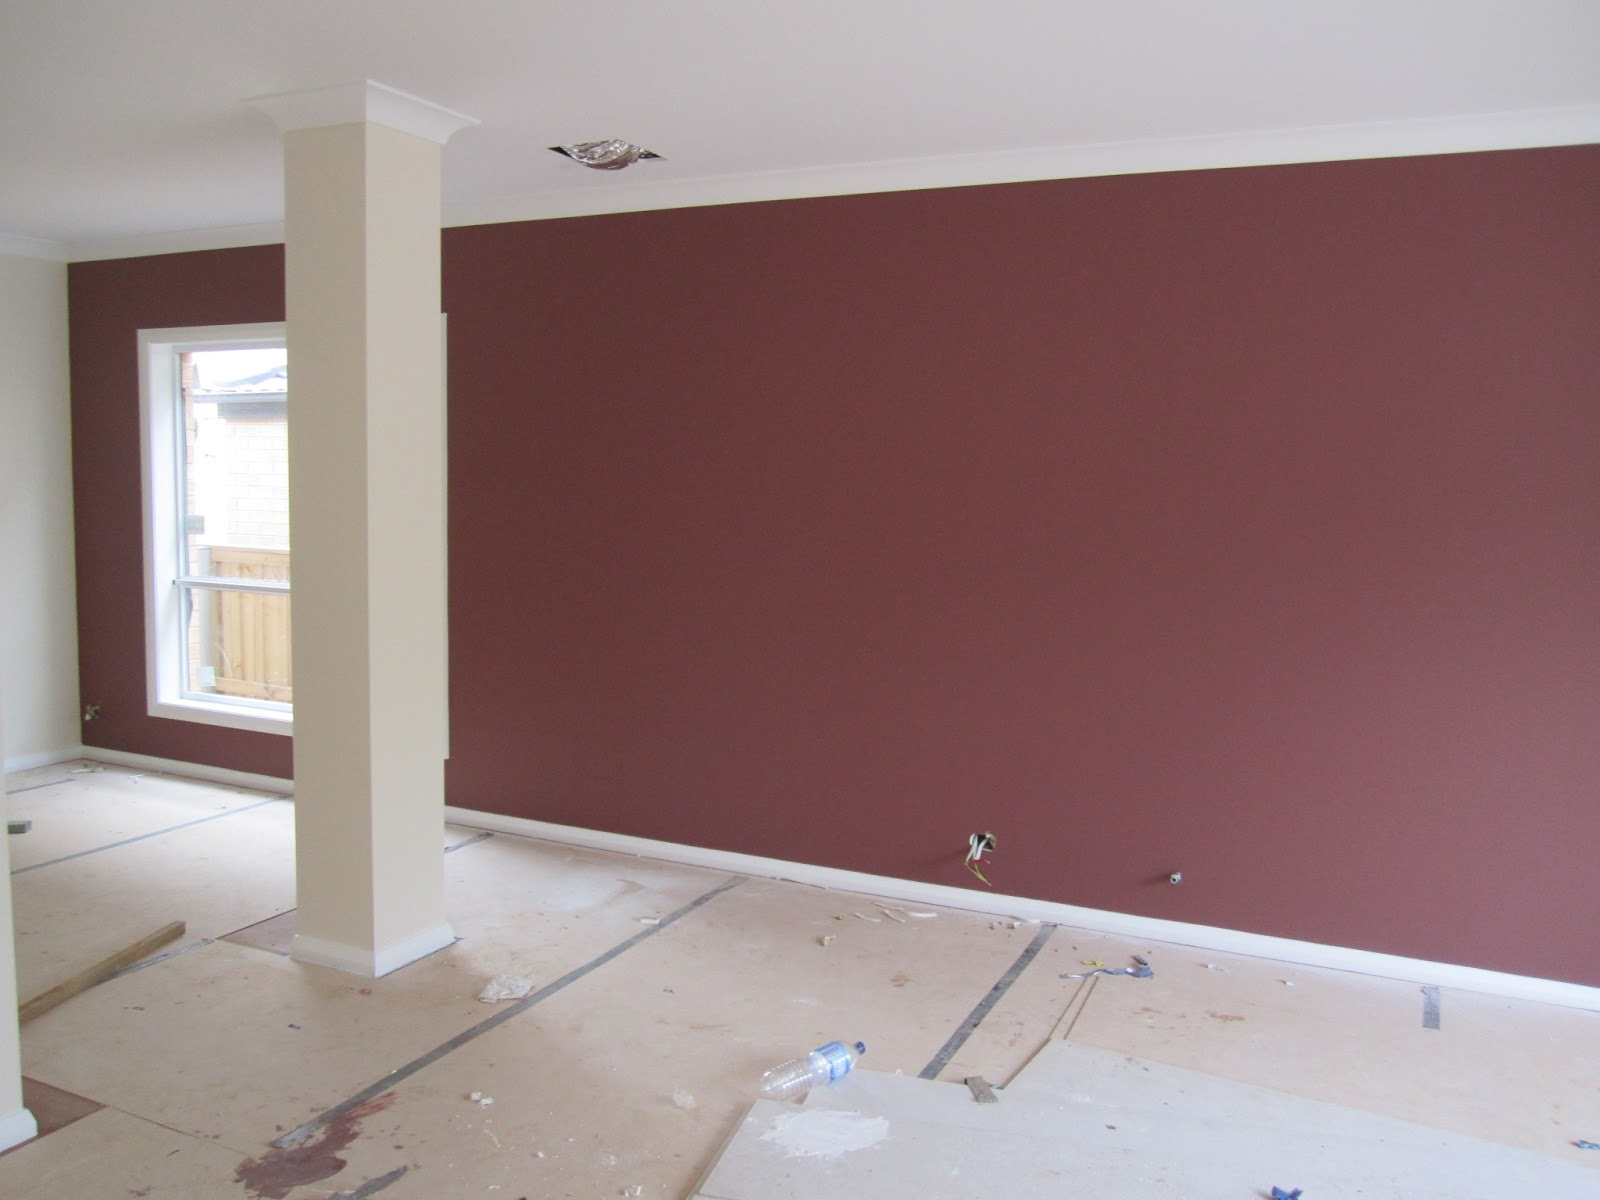 Dulux Wall Paint Design : Images about living room on dado rail